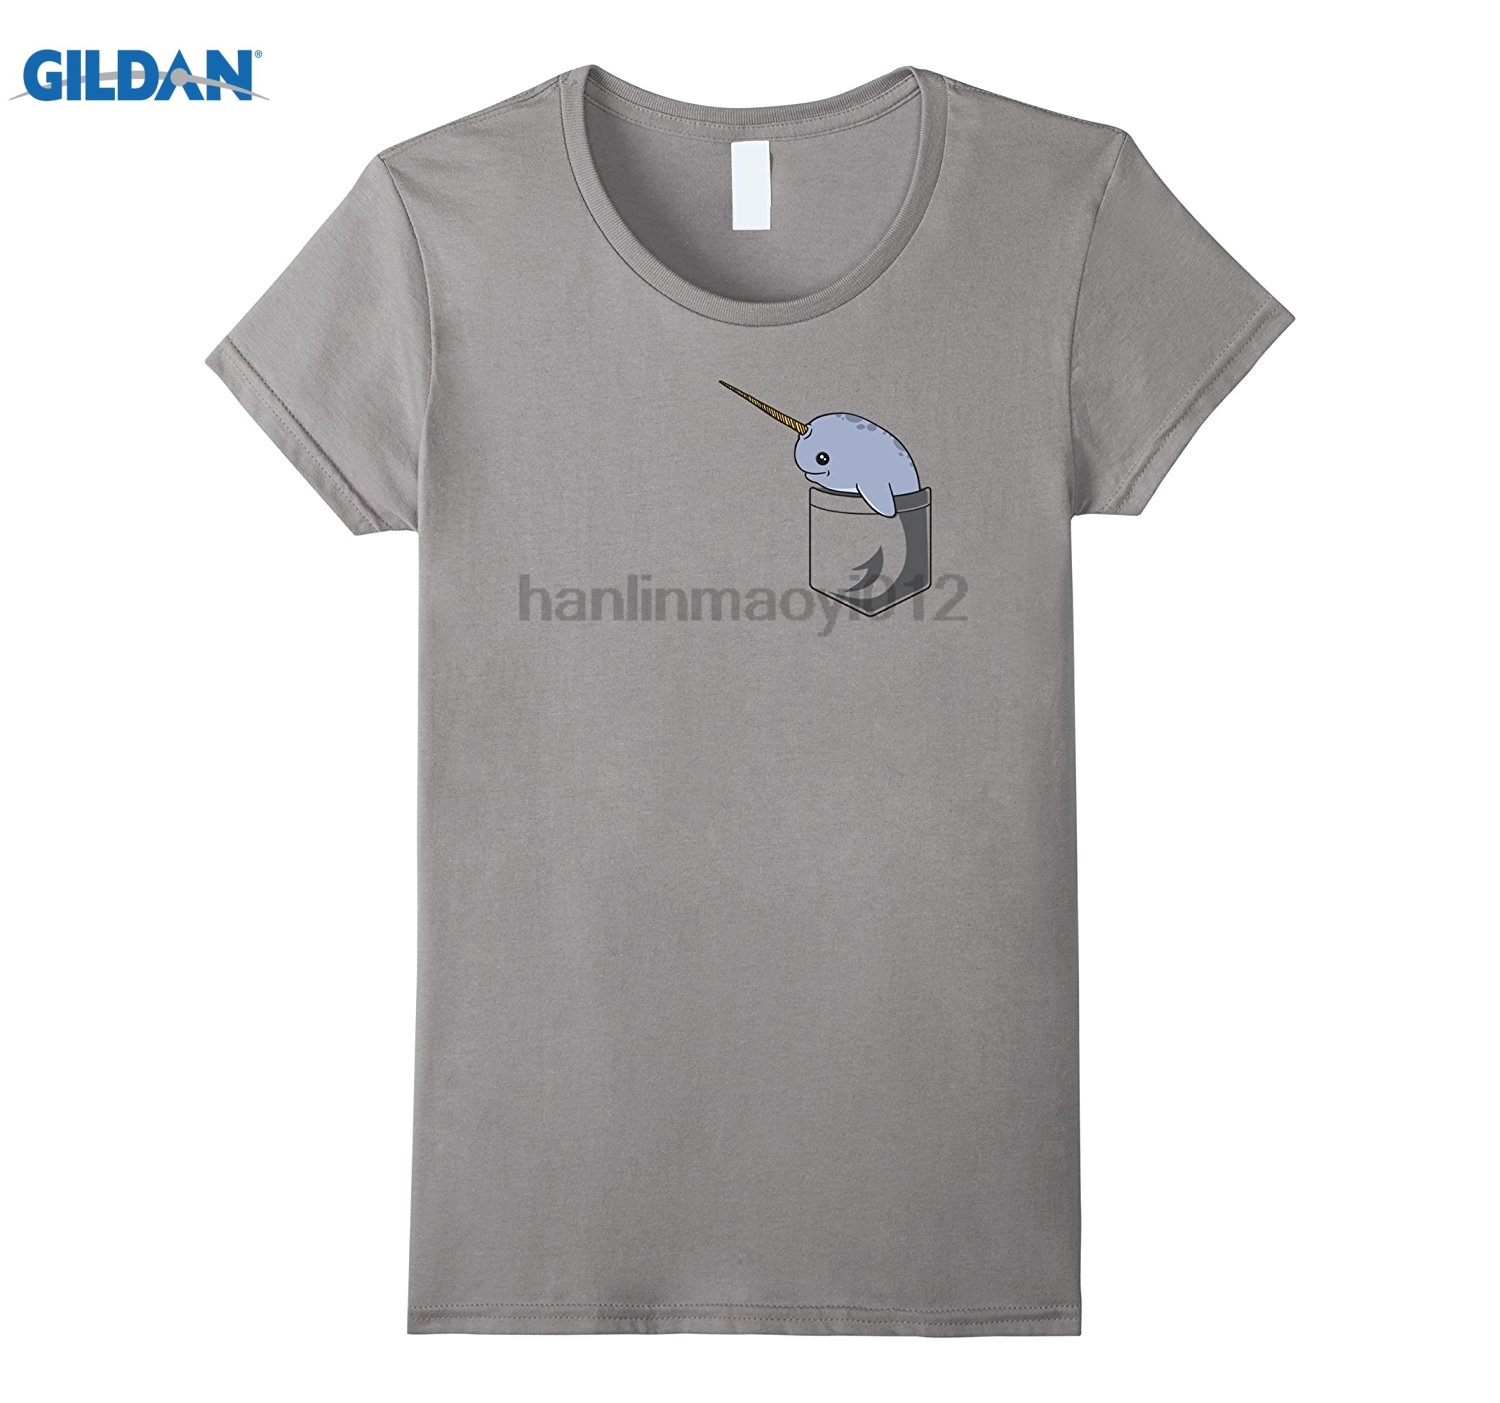 GILDAN Cute Narwhal T-Shirt - Pocket Narwhal Shirt Dress female T-shirt ...